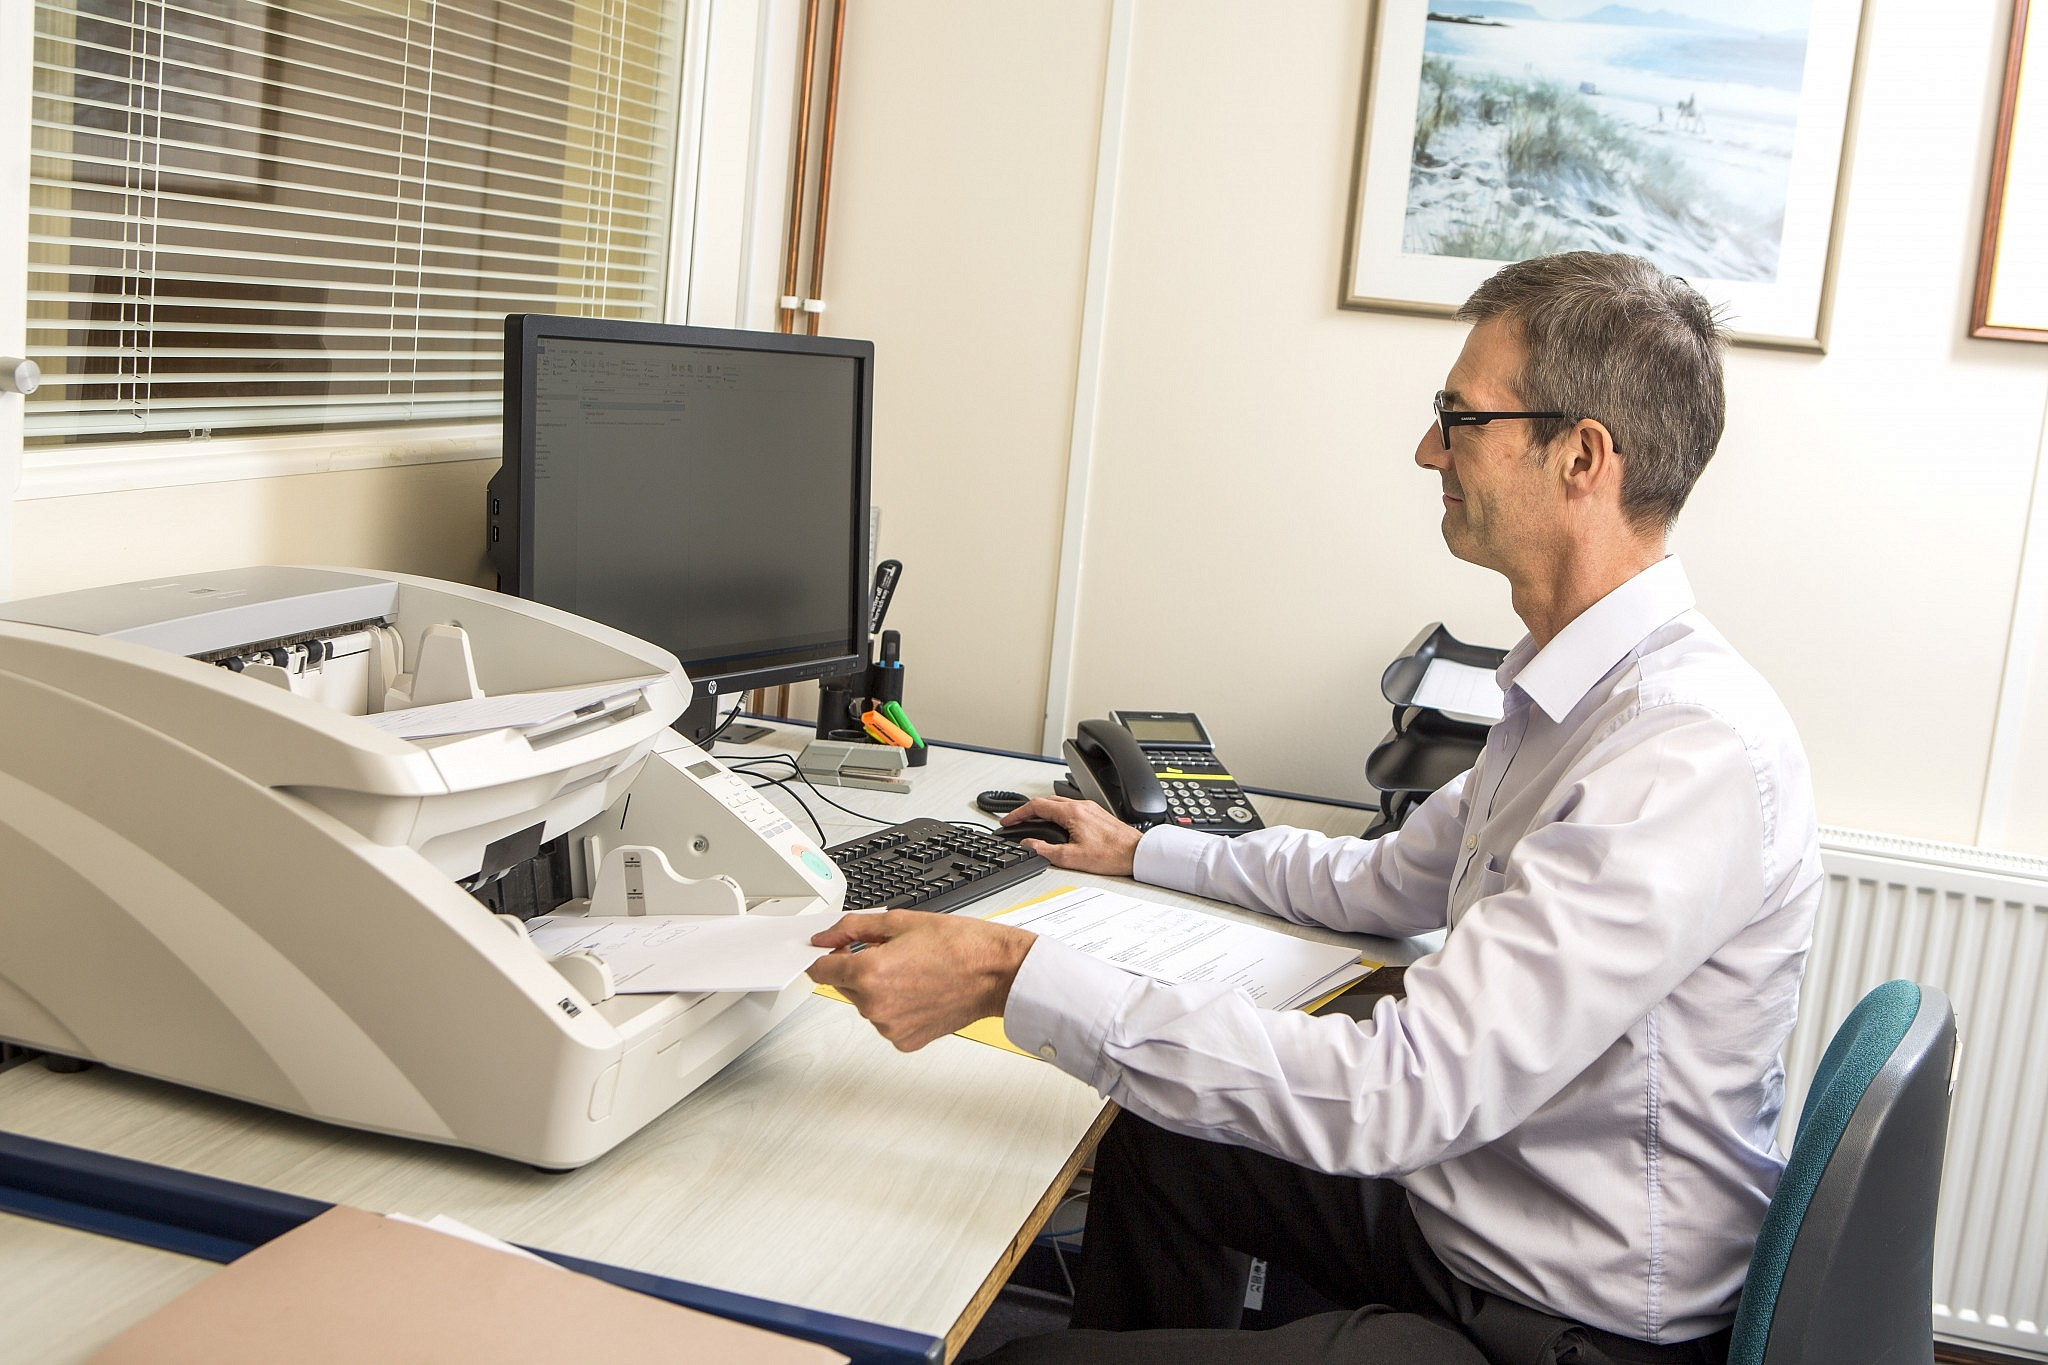 Document scanning services quote archiving company for Companies that scan documents for you